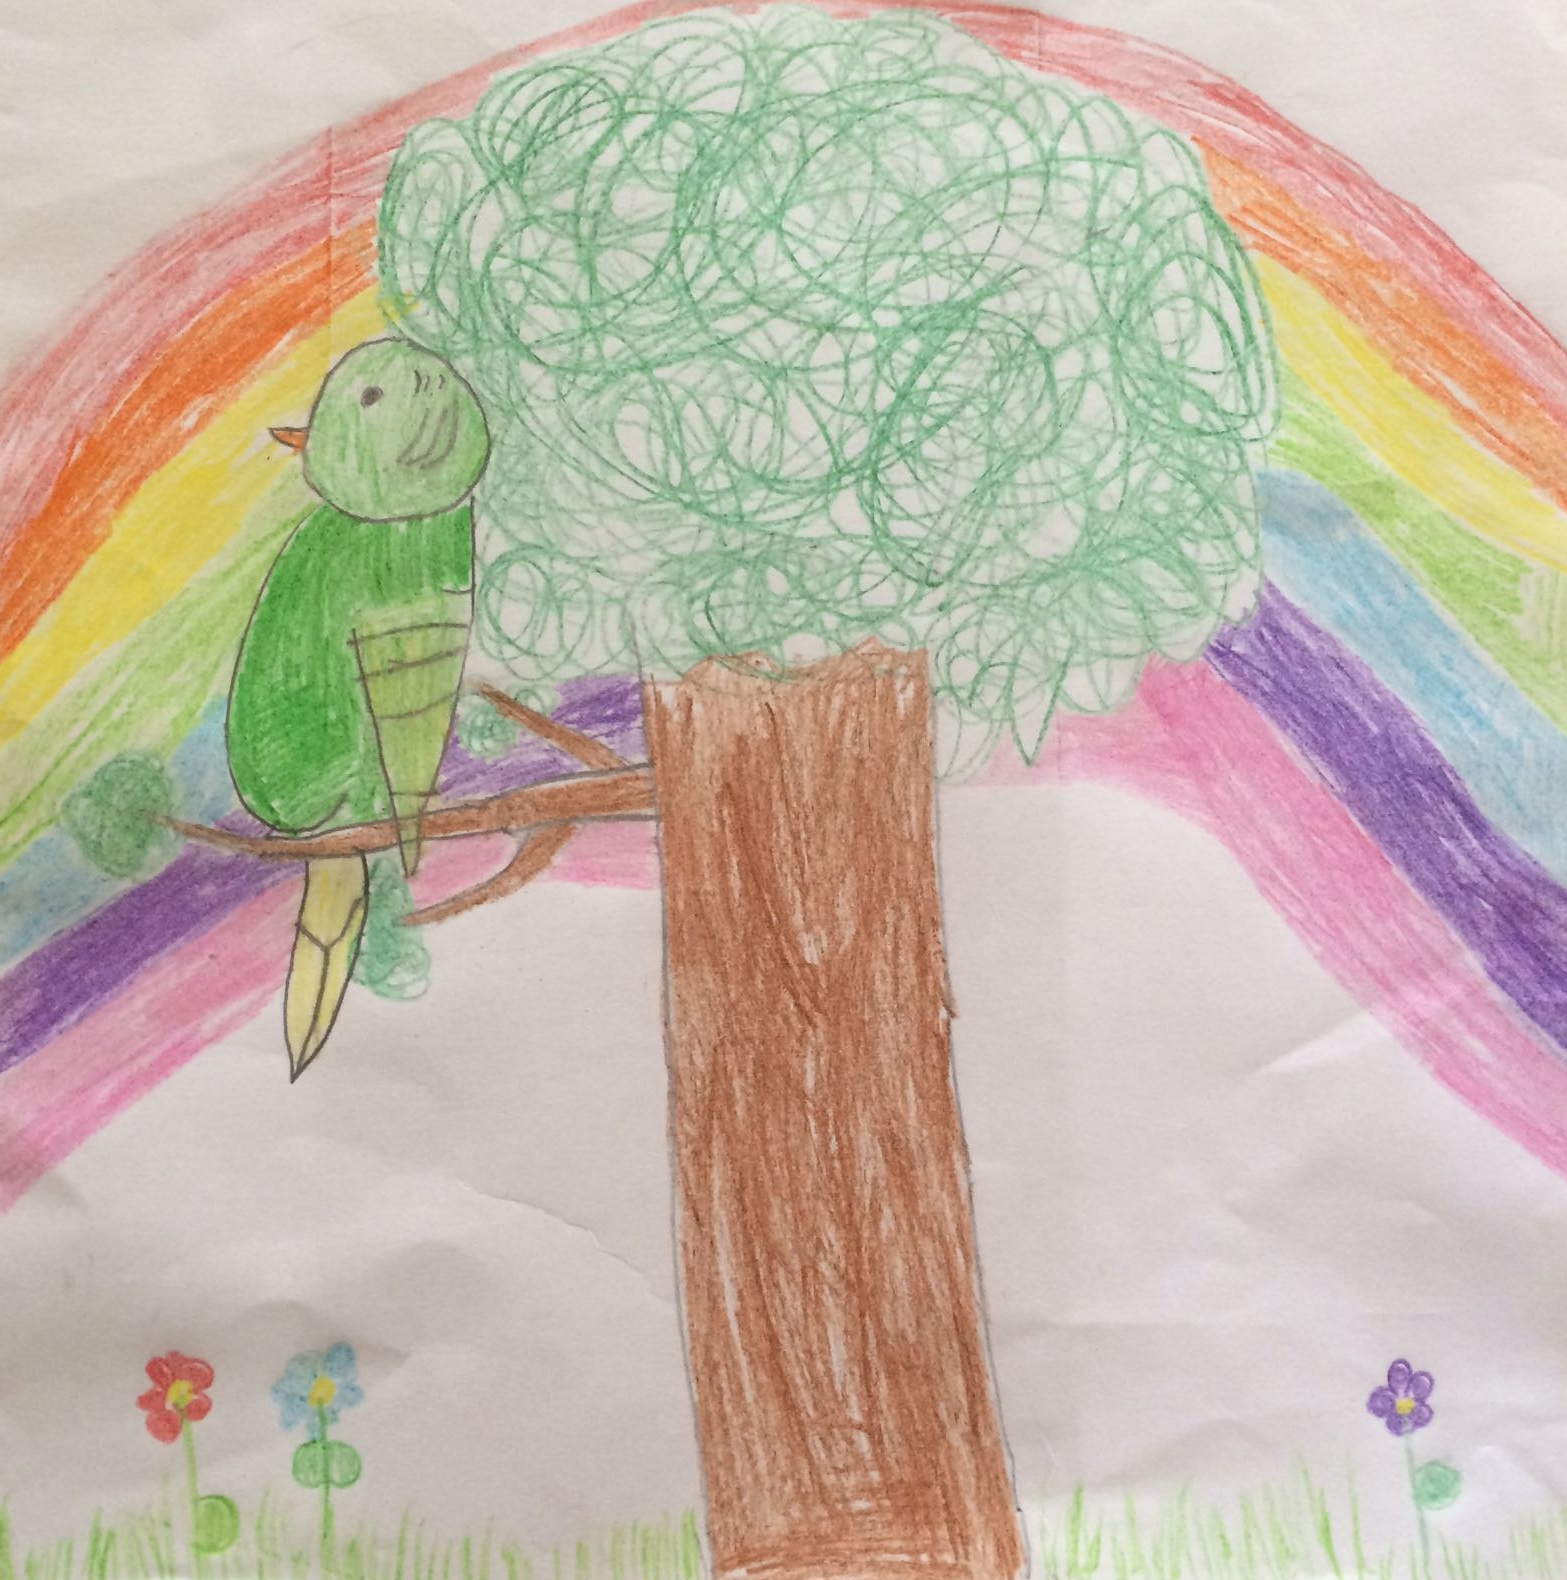 Parrot in a tree, by Emily